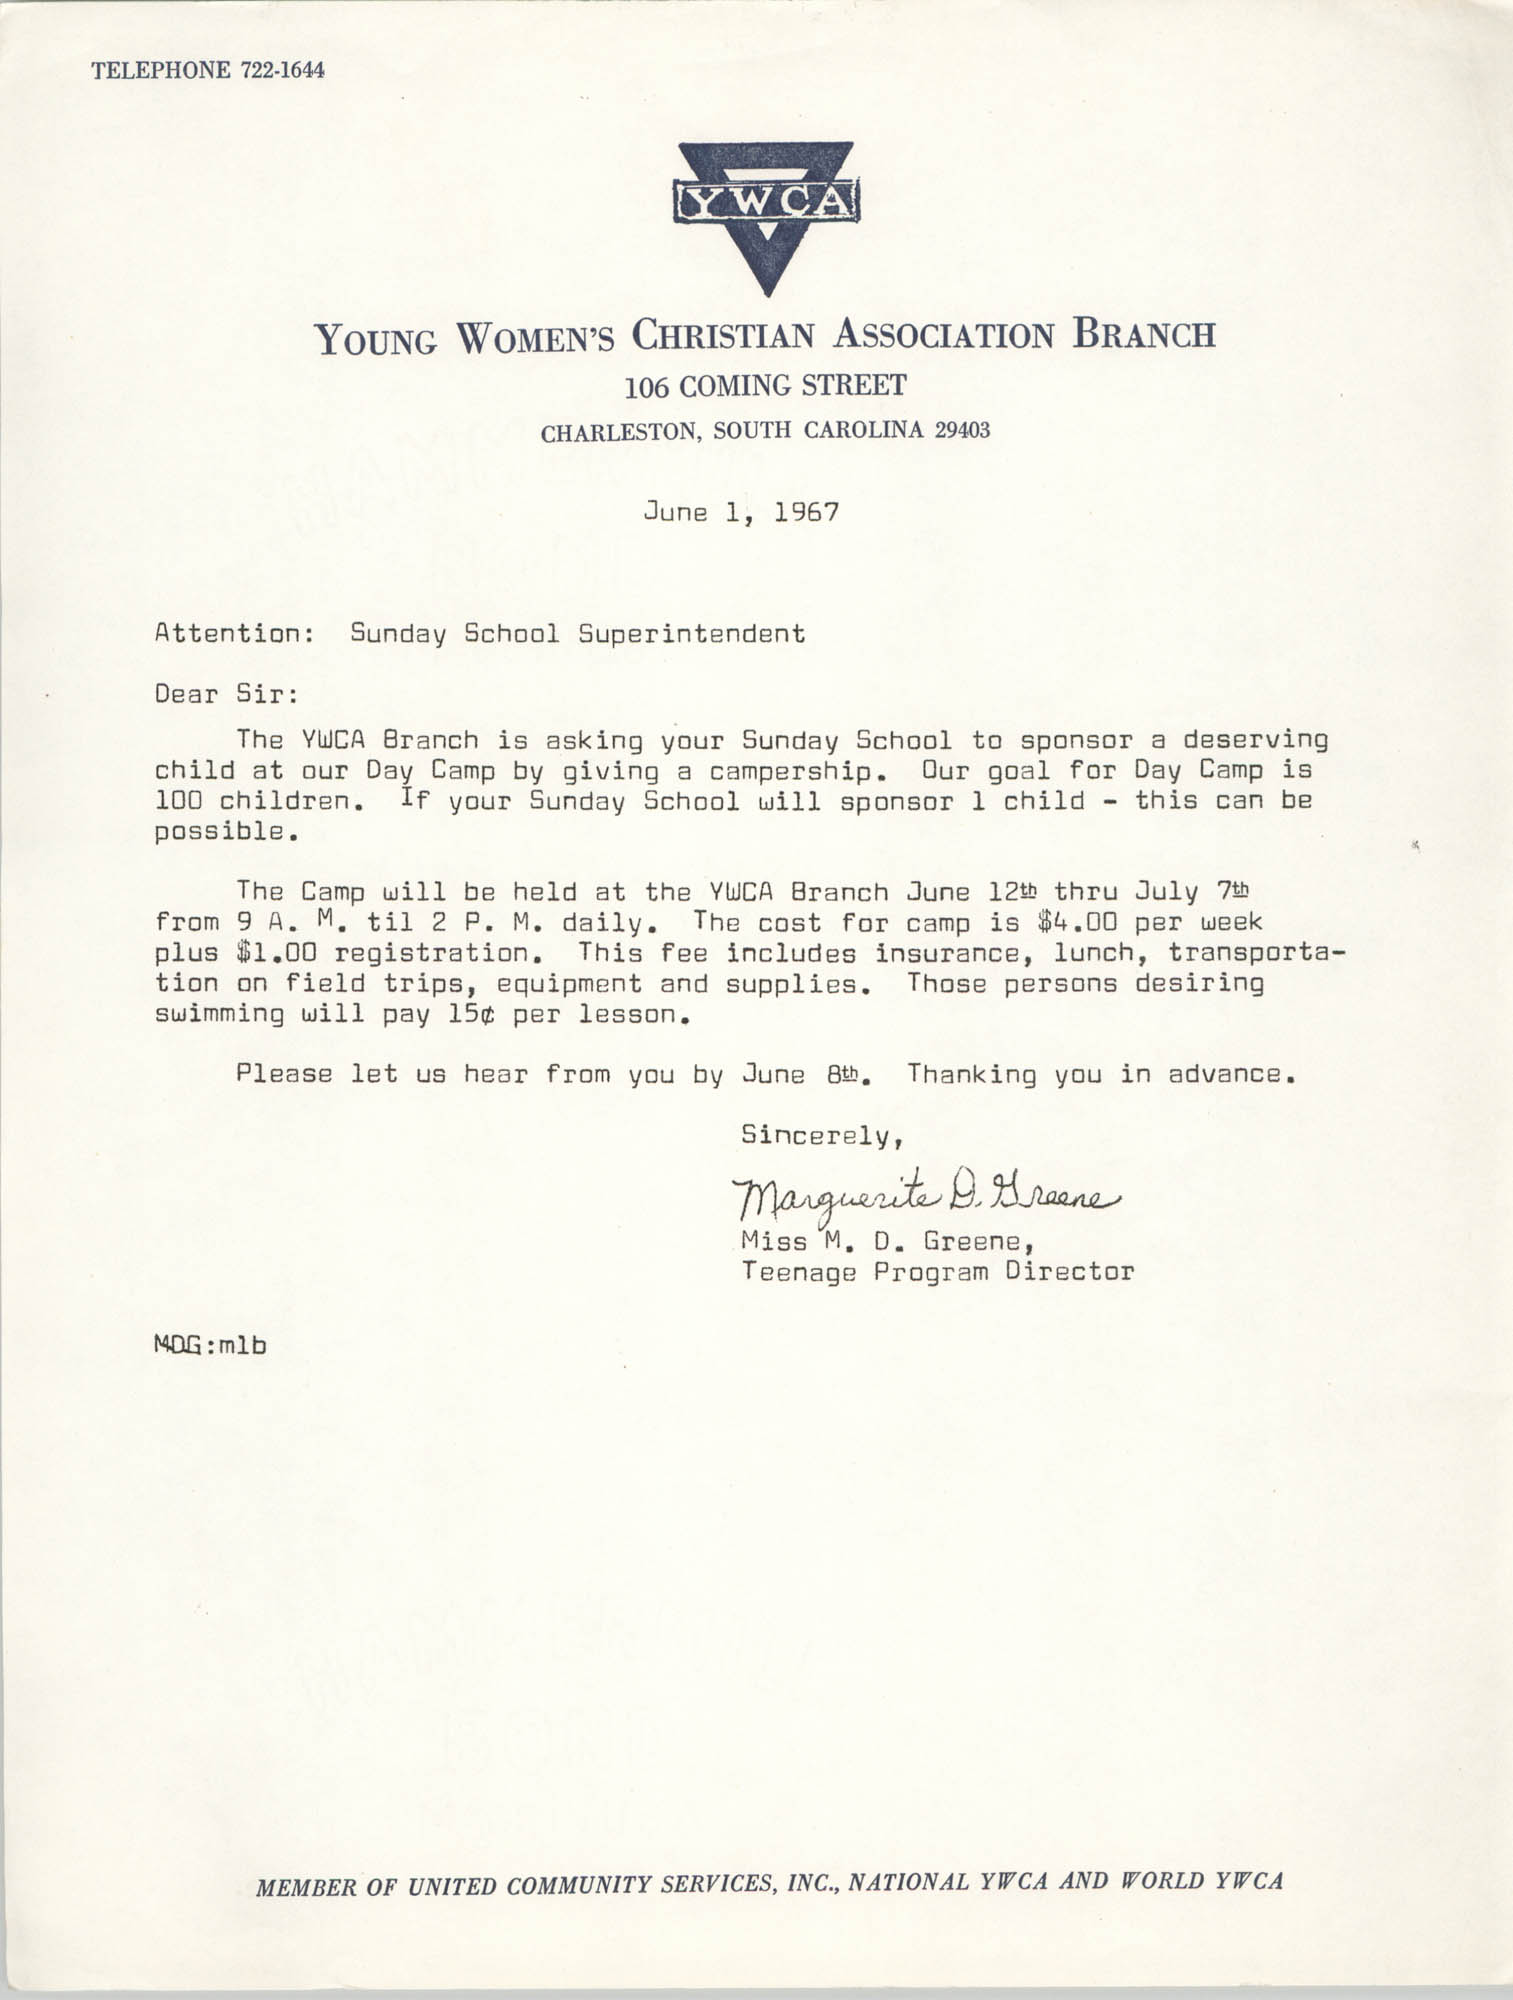 Letter from Marguerite D. Greene, June 1, 1967